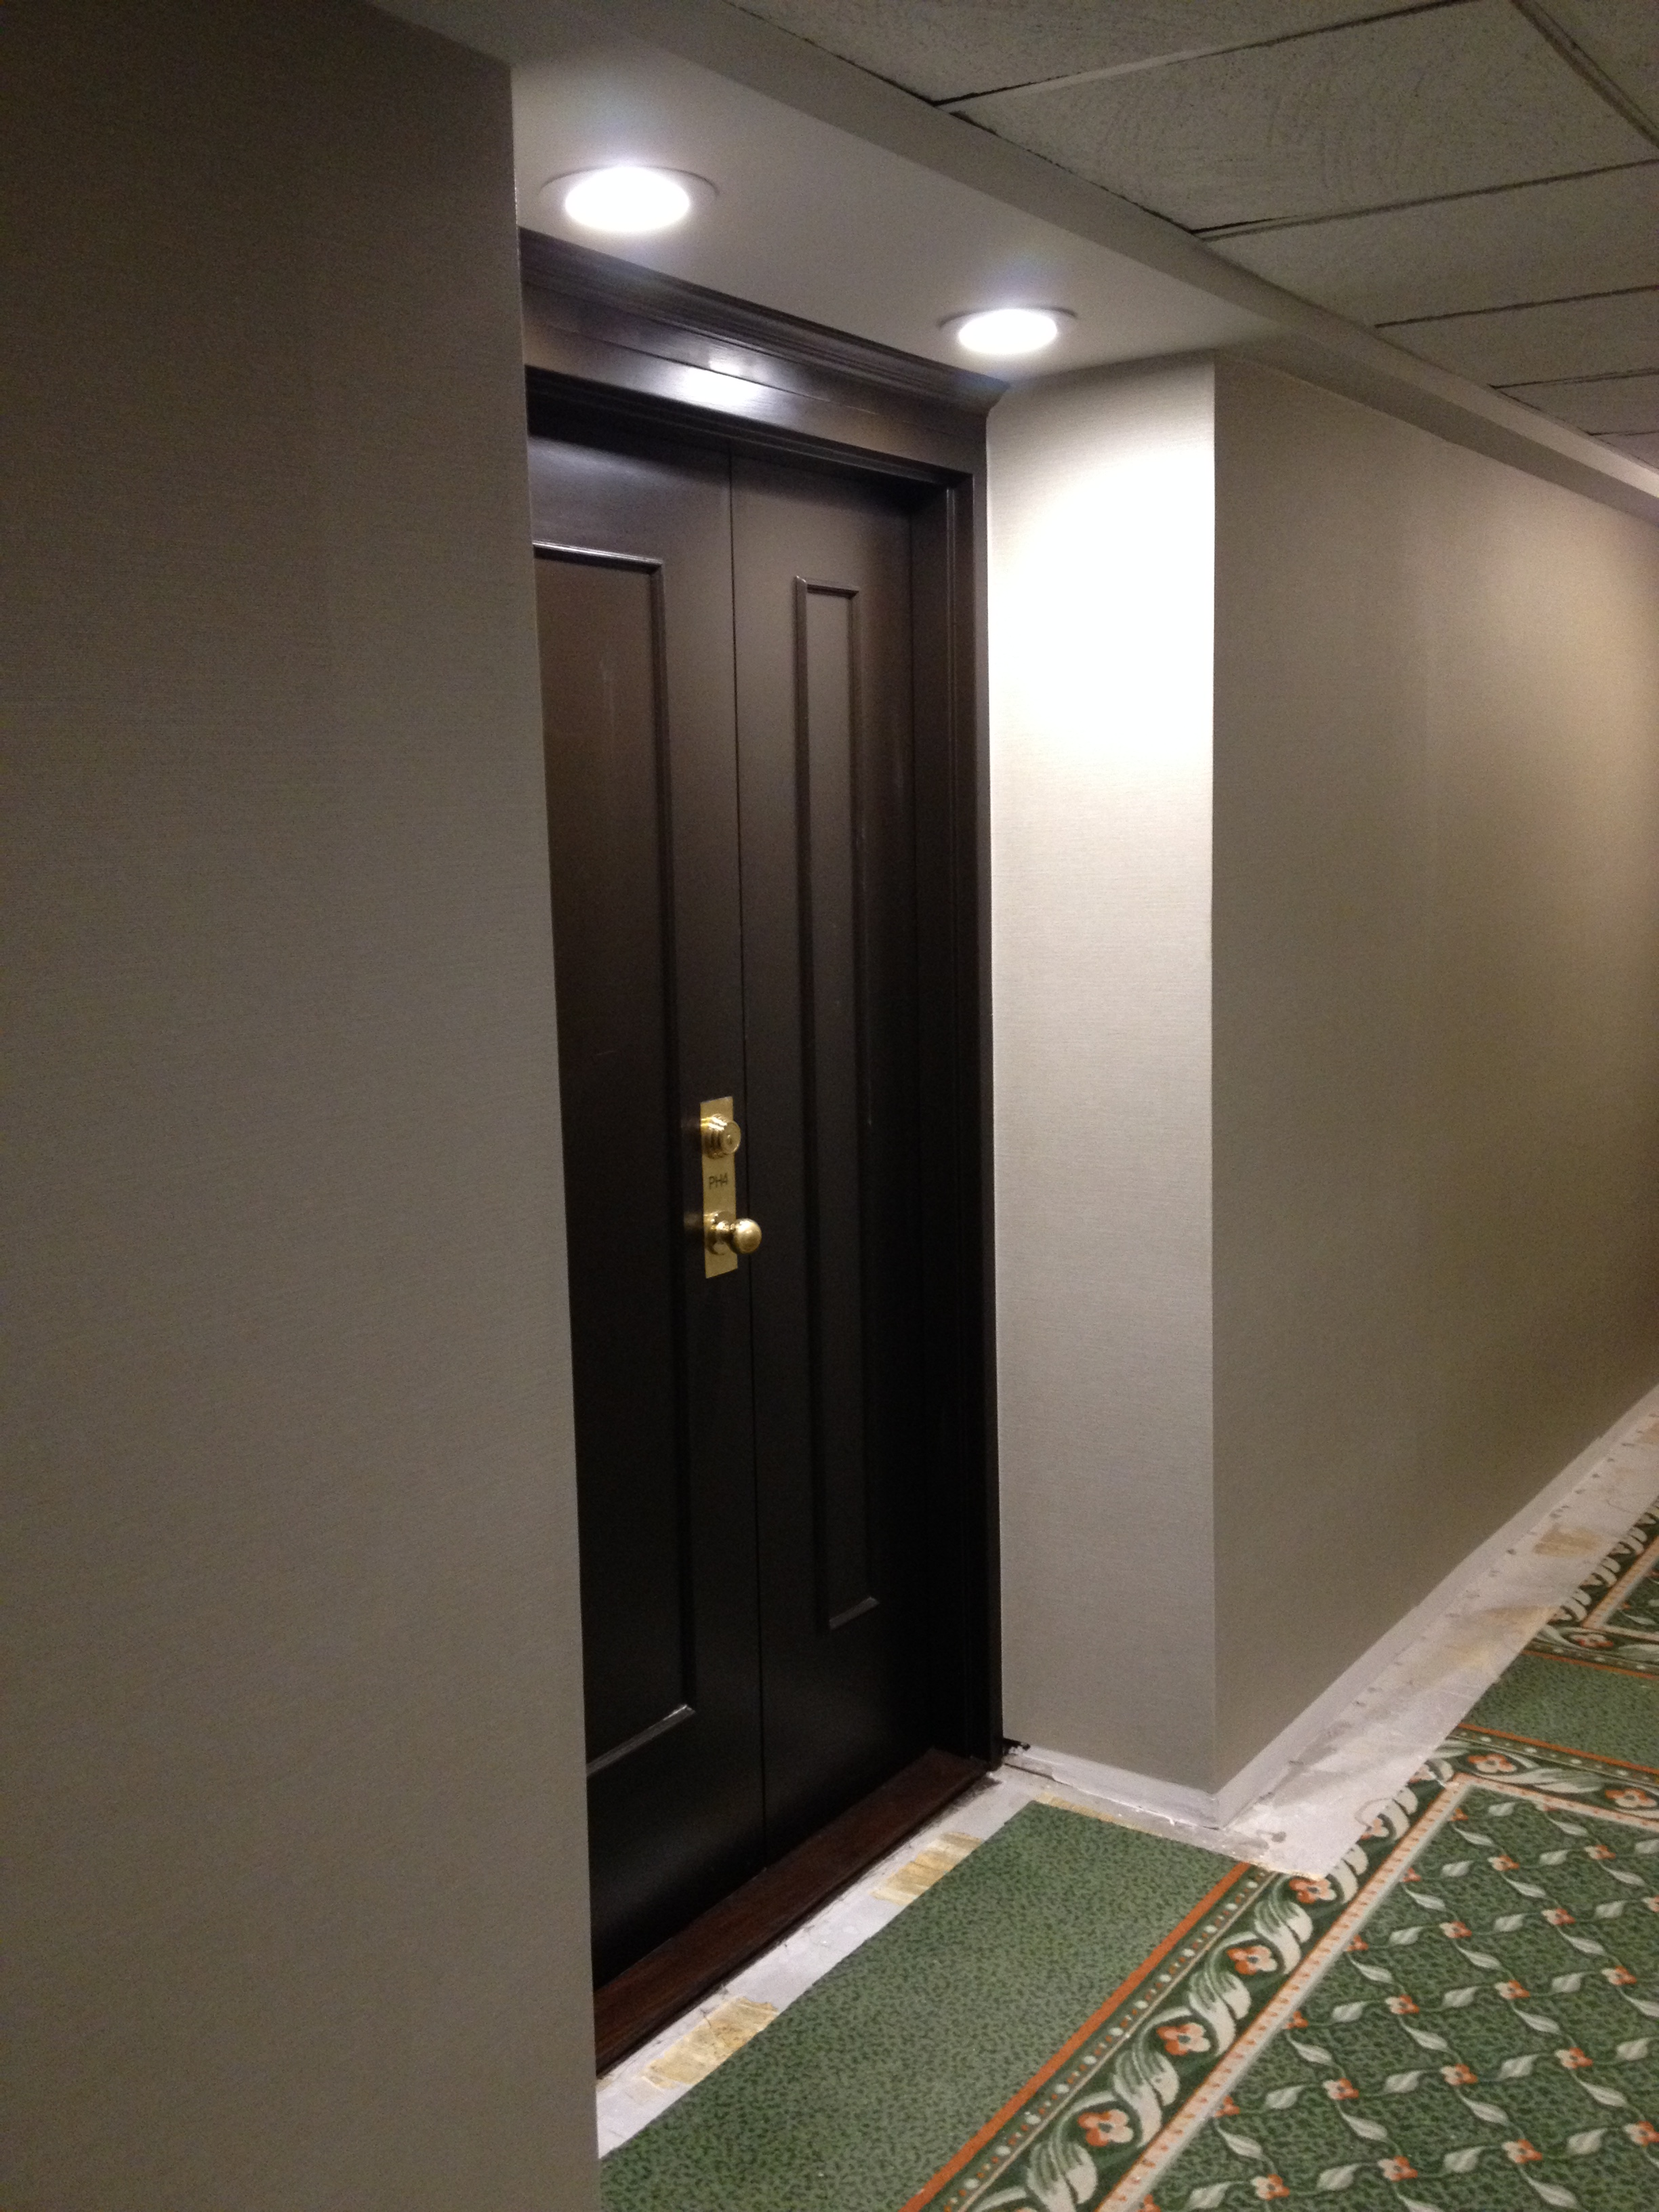 New Penthouse Suite Entry and Wall Vinyl